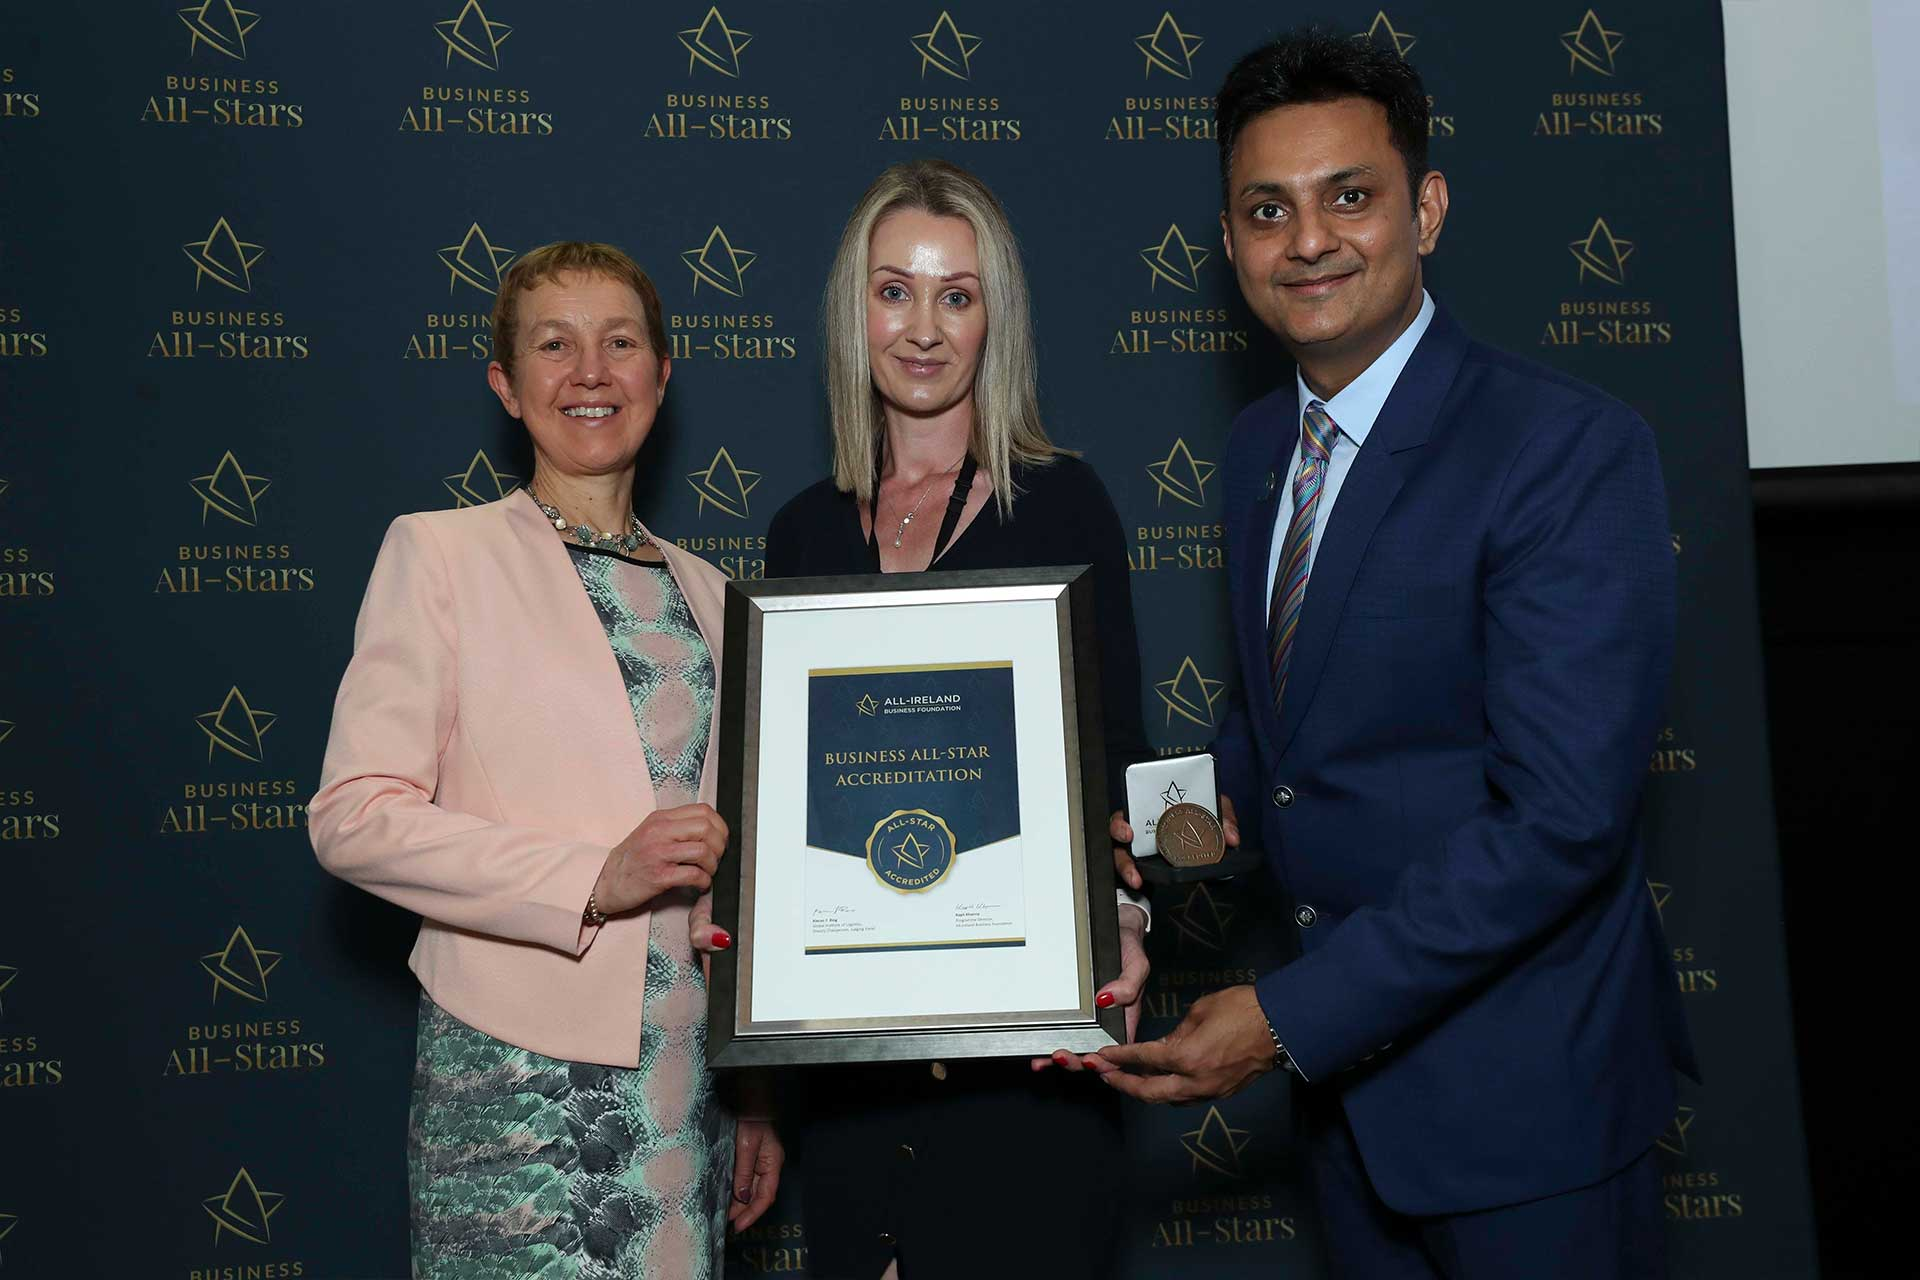 Liz Cronin, Revive Clinic receiving Business All-Star Accreditation at Croke Park from Dr Briga Hynes, Kemmy Business School University of Limerick and Kapil Khanna, MD, All-Ireland Business Foundation.